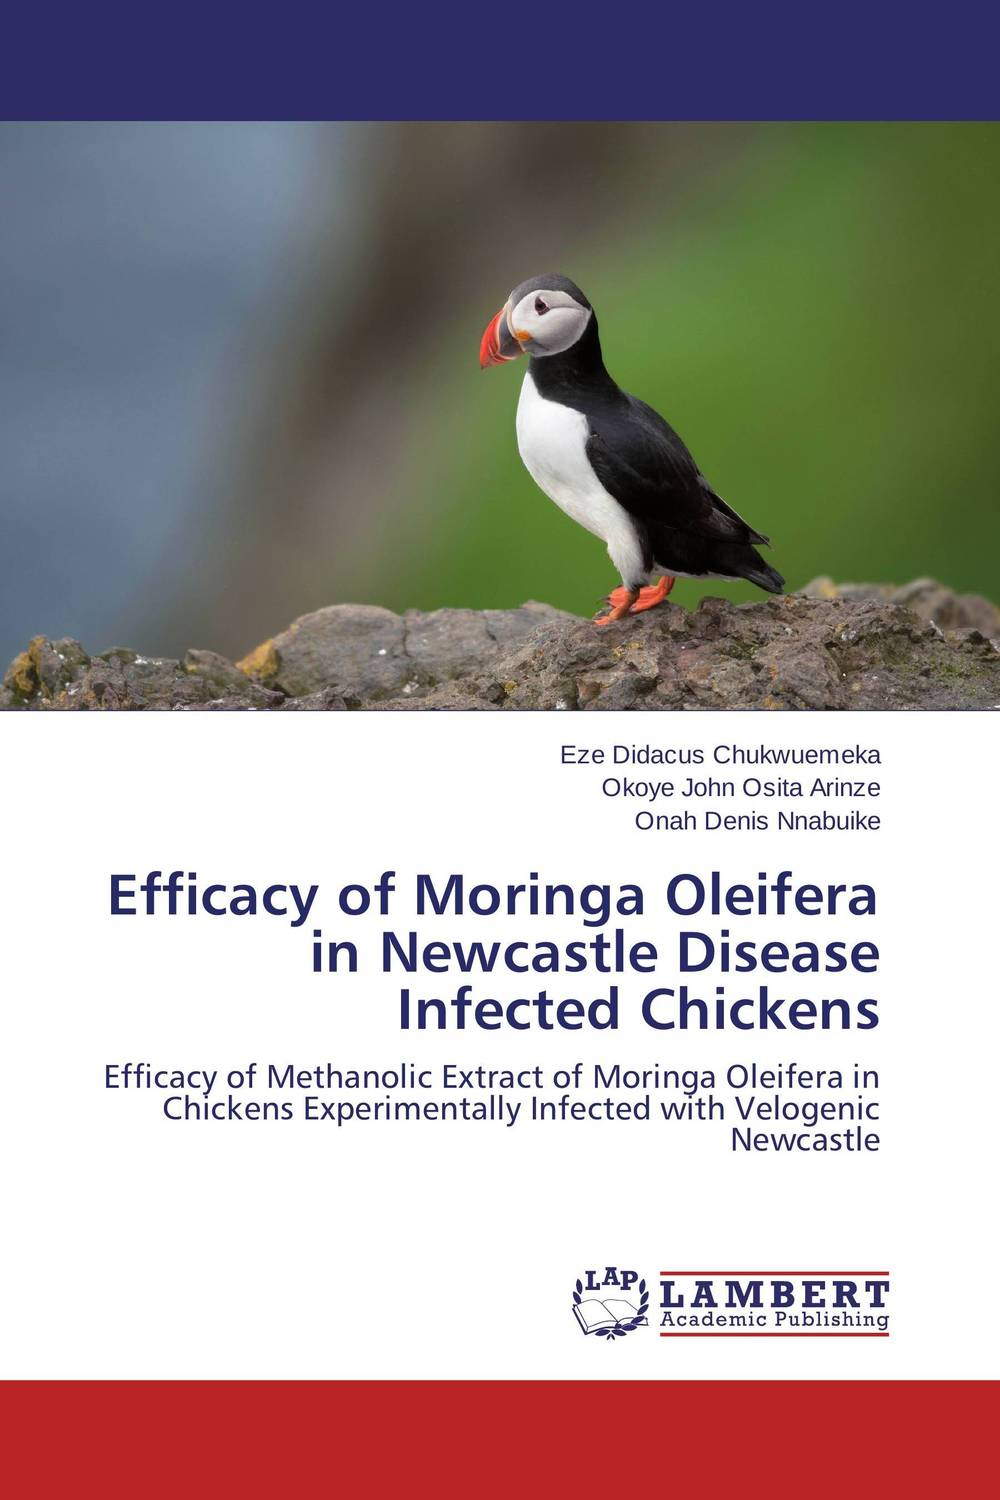 Efficacy of Moringa Oleifera in Newcastle Disease Infected Chickens herbal extract powder moringa oleifera leaf powder capsule 500mg 800pcs